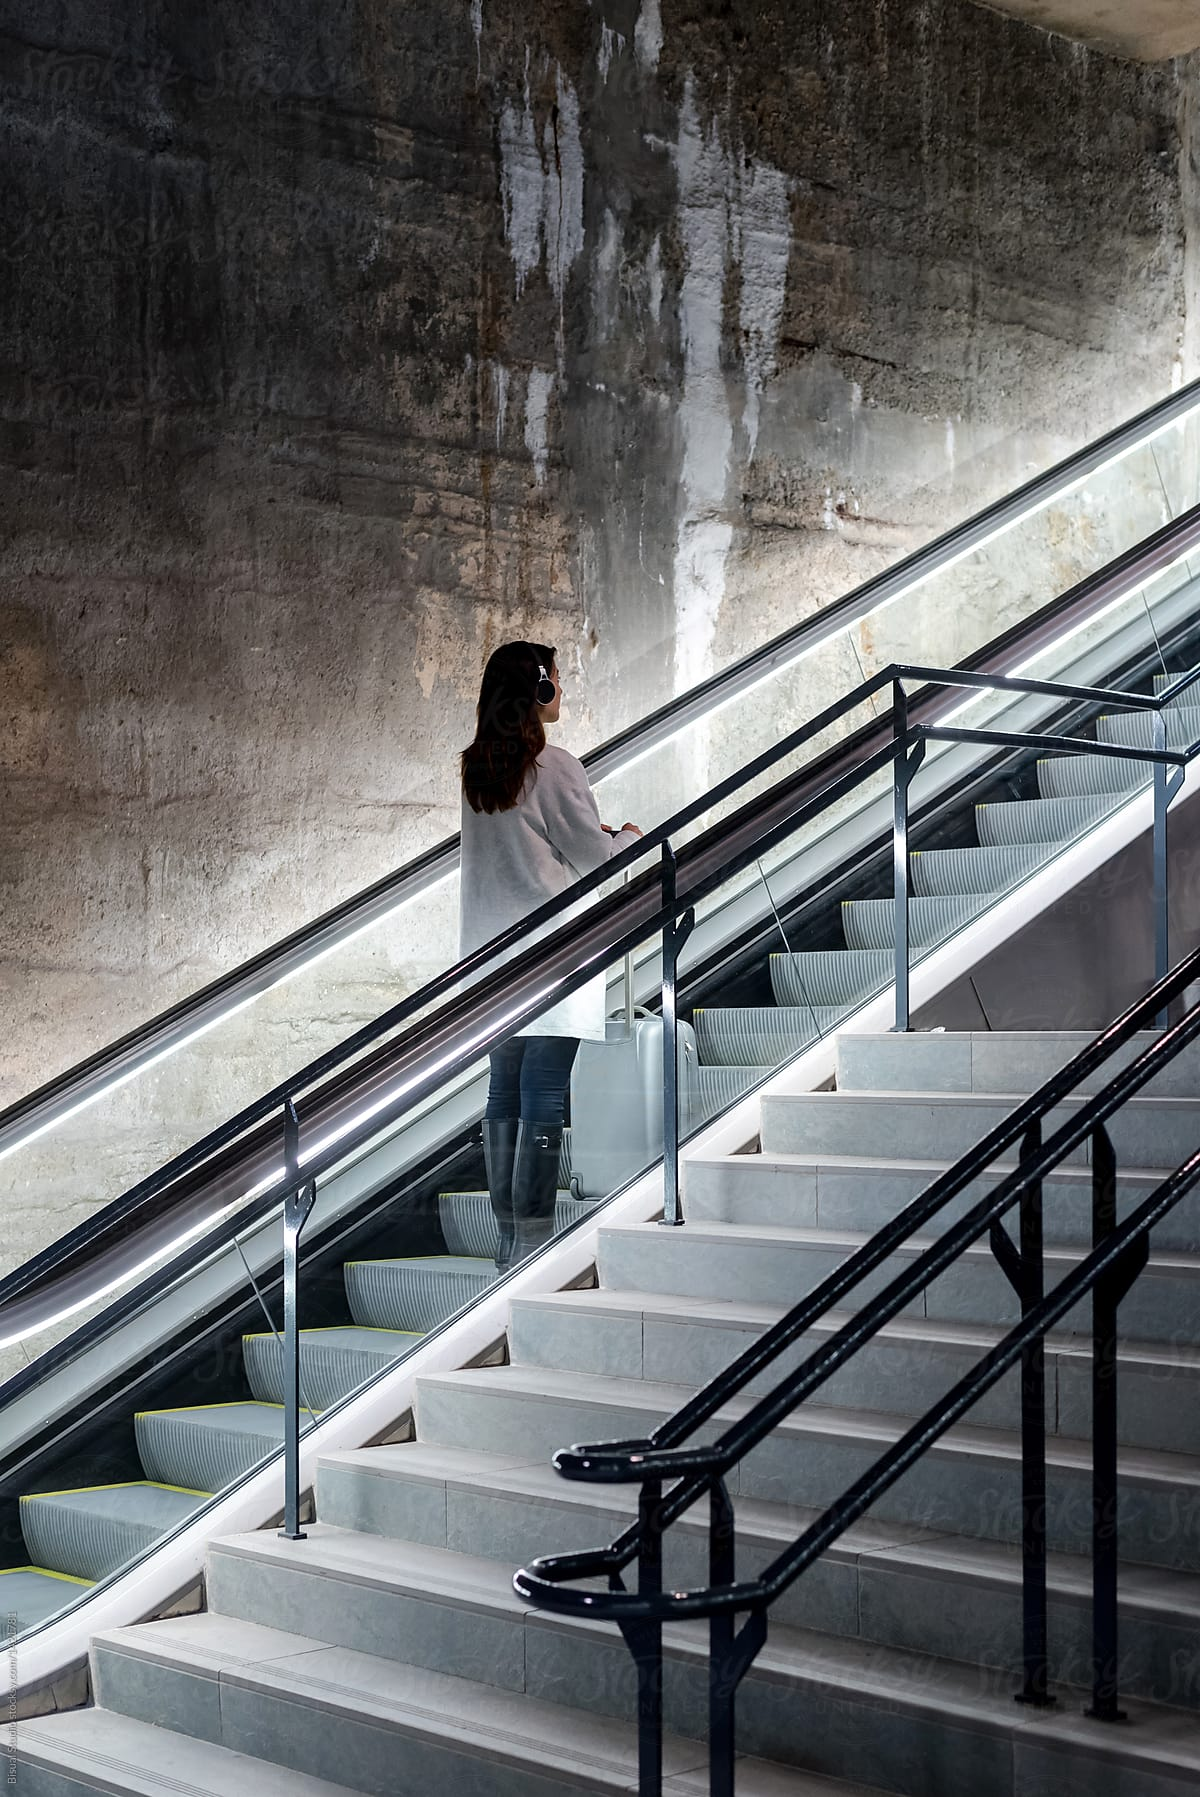 Superieur Female Traveler In Headphones On Moving Stairs By Bisual Studio For Stocksy  United